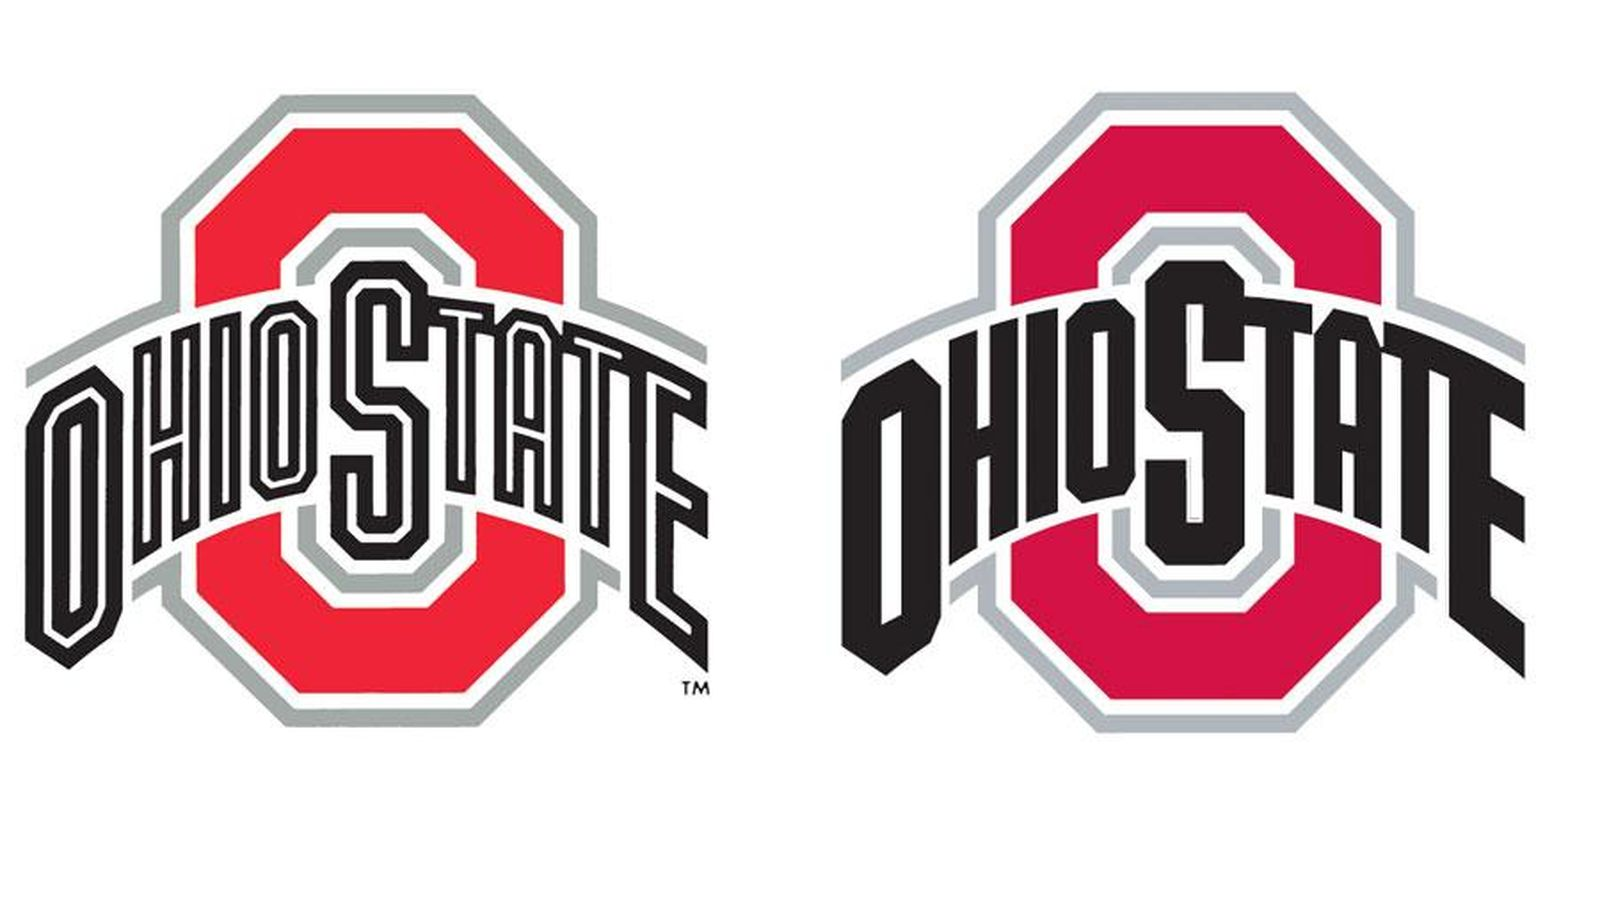 Ohio state football logo clipart vector black and white library New Ohio State logos cost school $45,000 - Land-Grant Holy Land vector black and white library